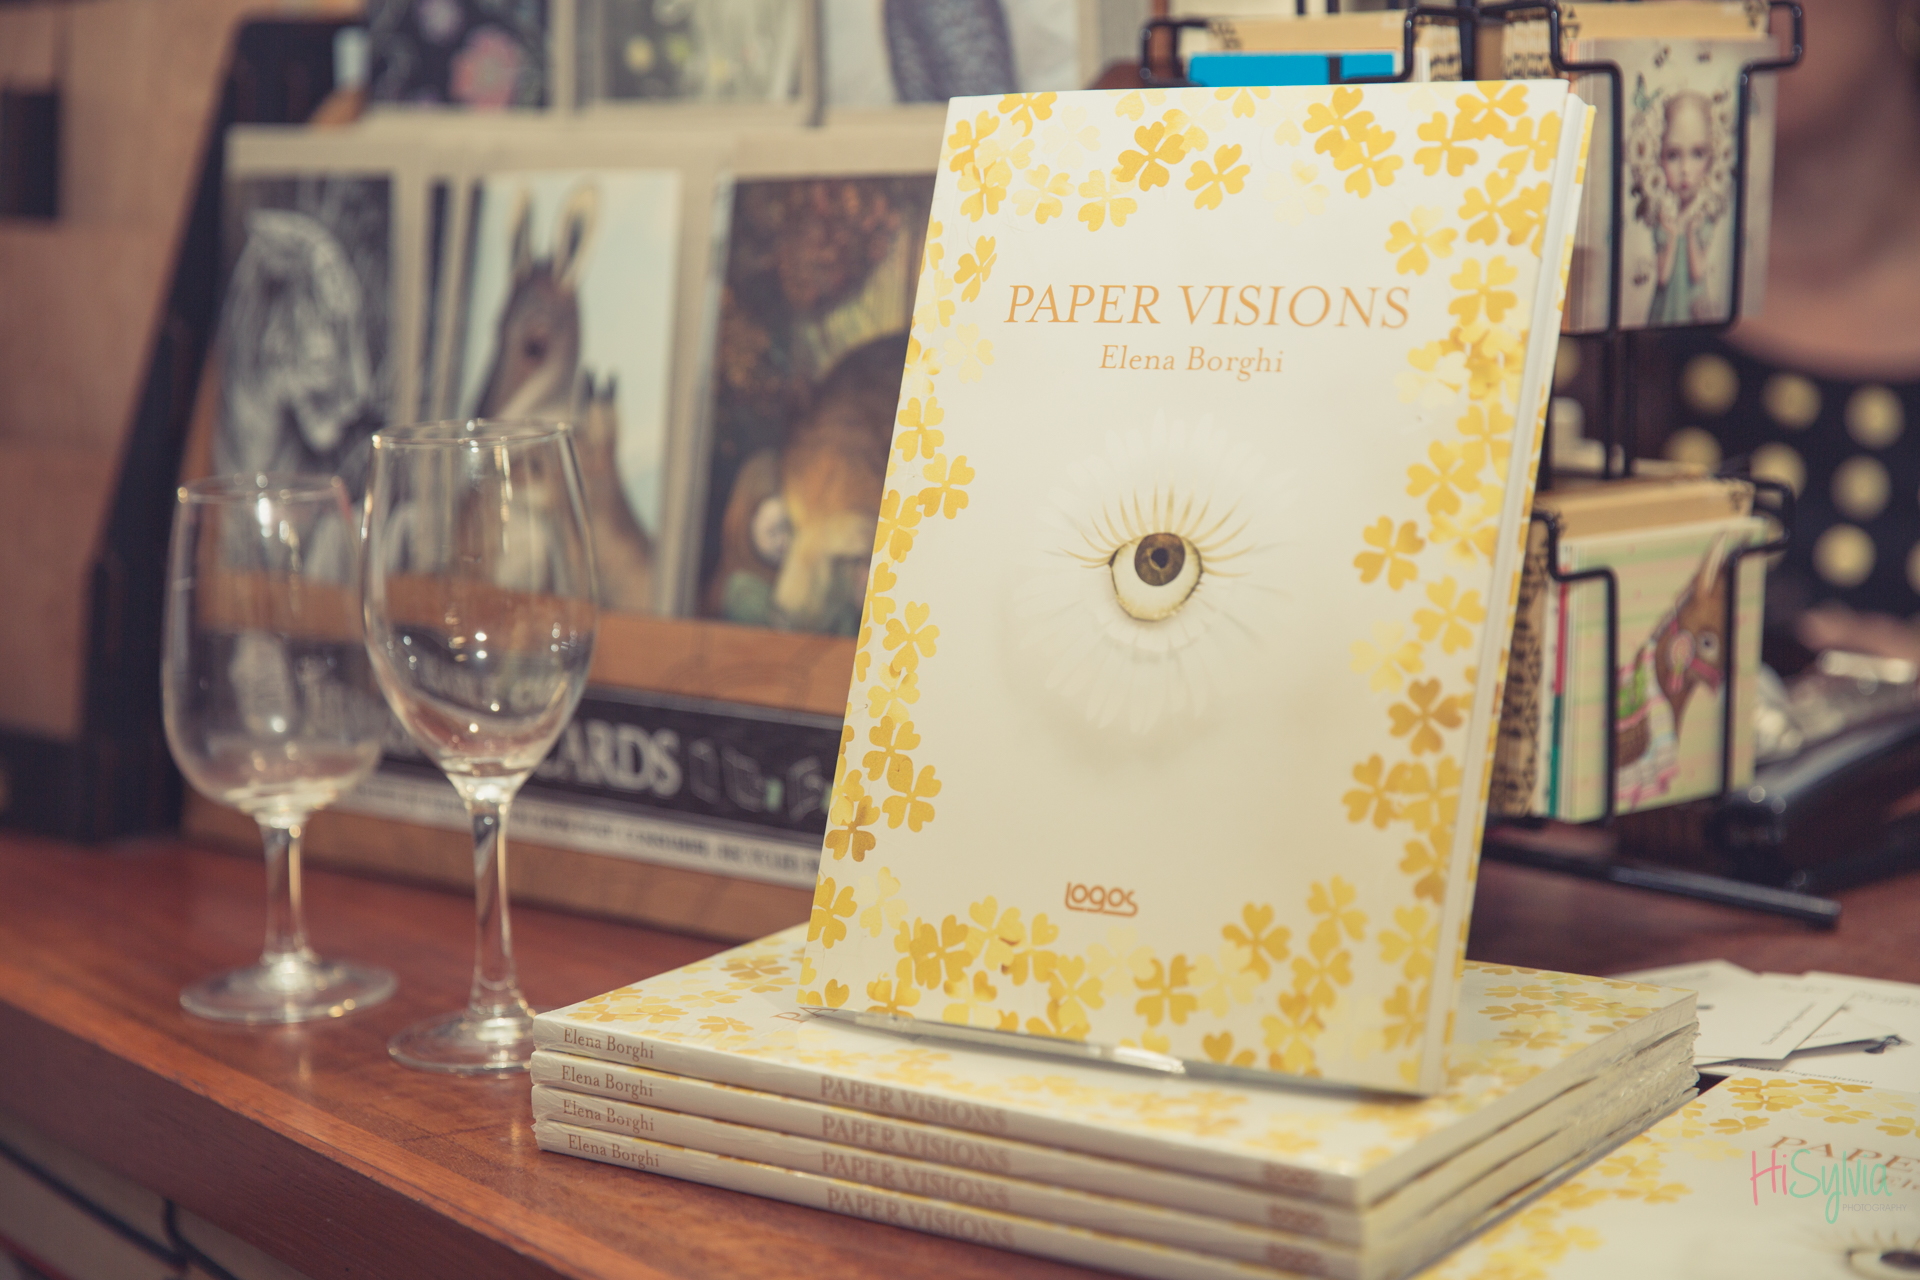 PAPER VISIONS in tour a Melbourne! Elena Borghi, Logos Edizioni. Book signing at Brunswick Bound library